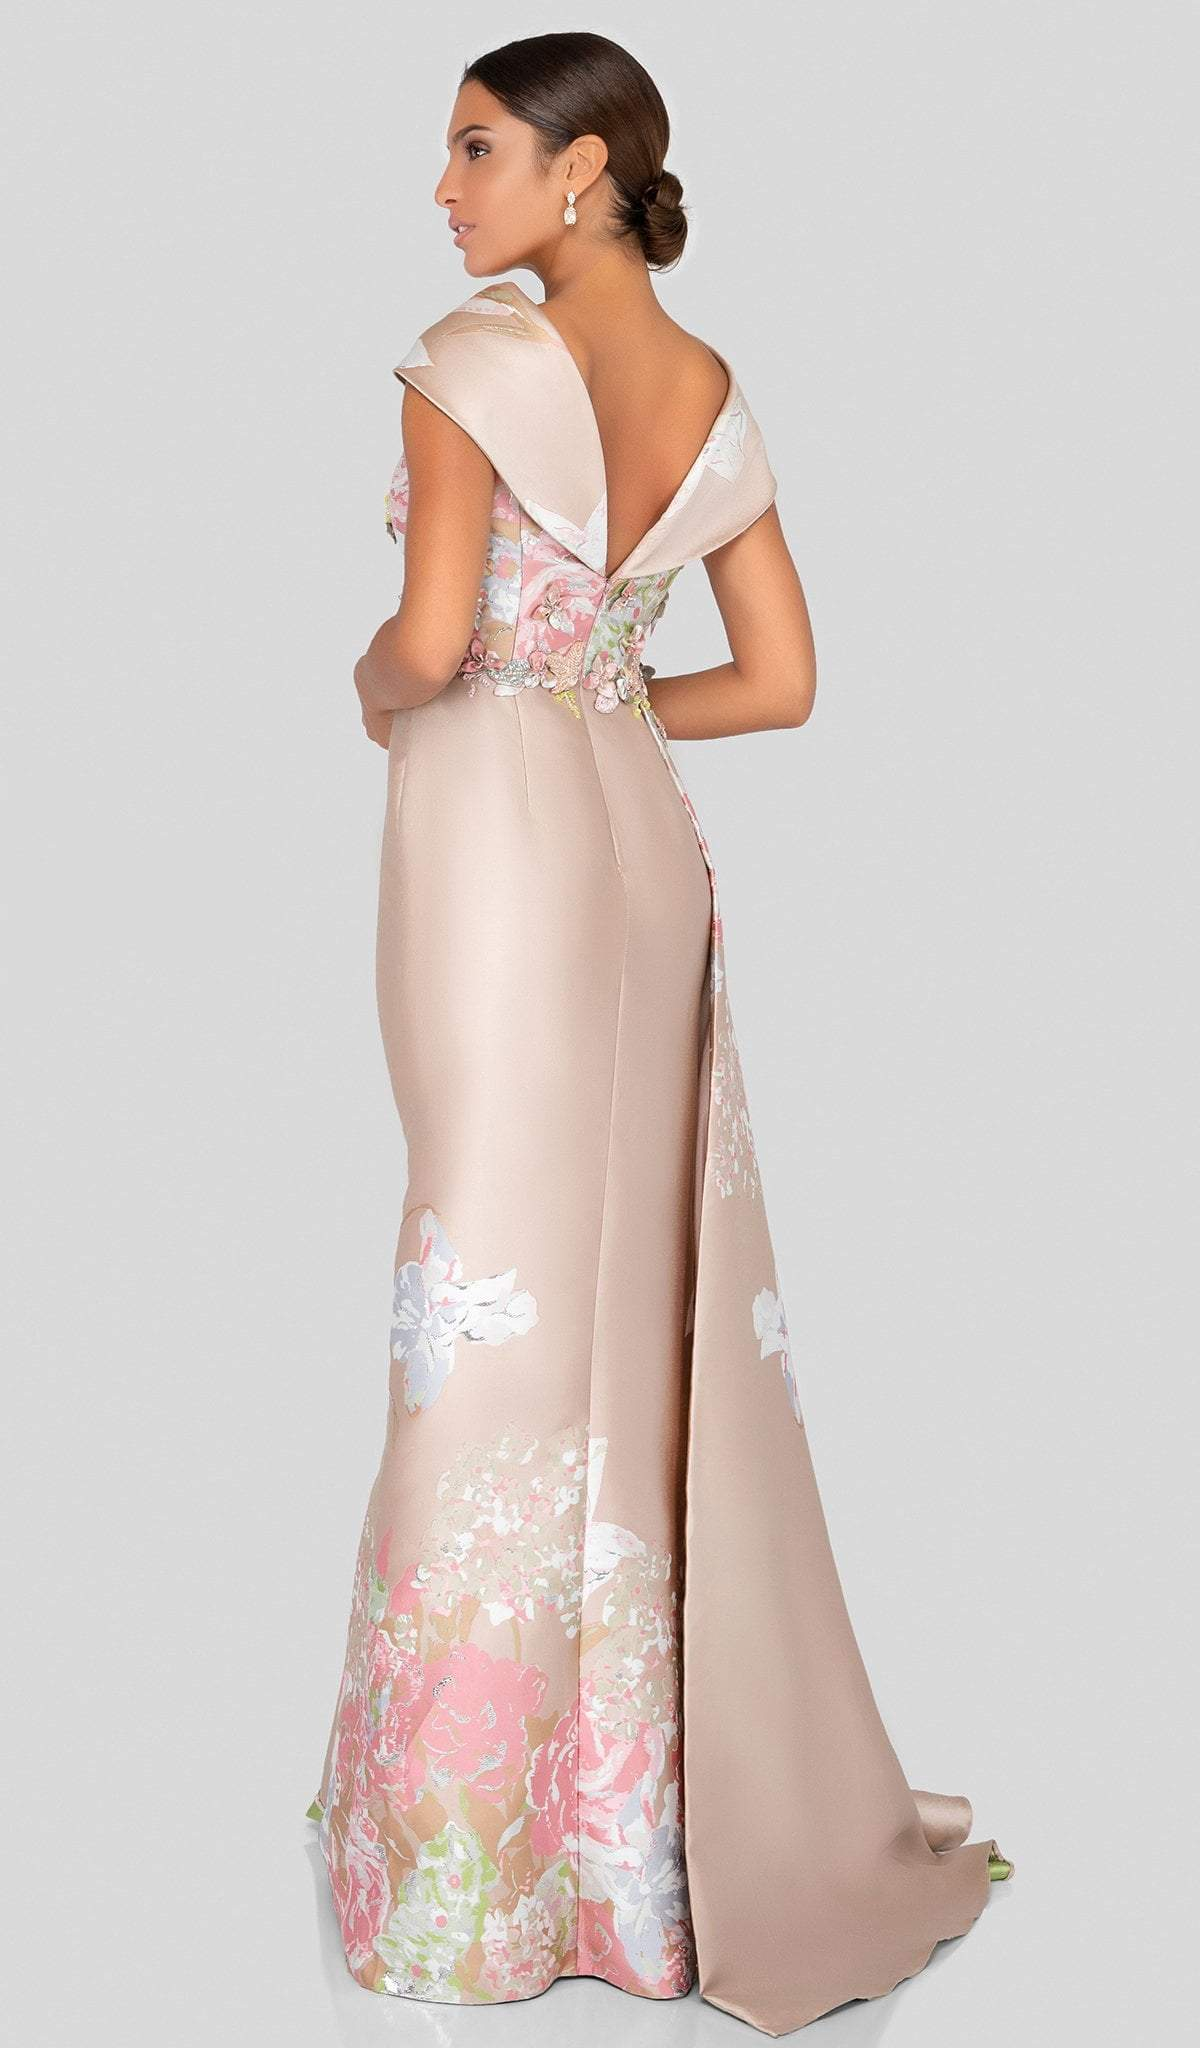 Terani Couture - 1911M9315 Floral Appliqued Cowl Evening Gown In Neutral and Silver